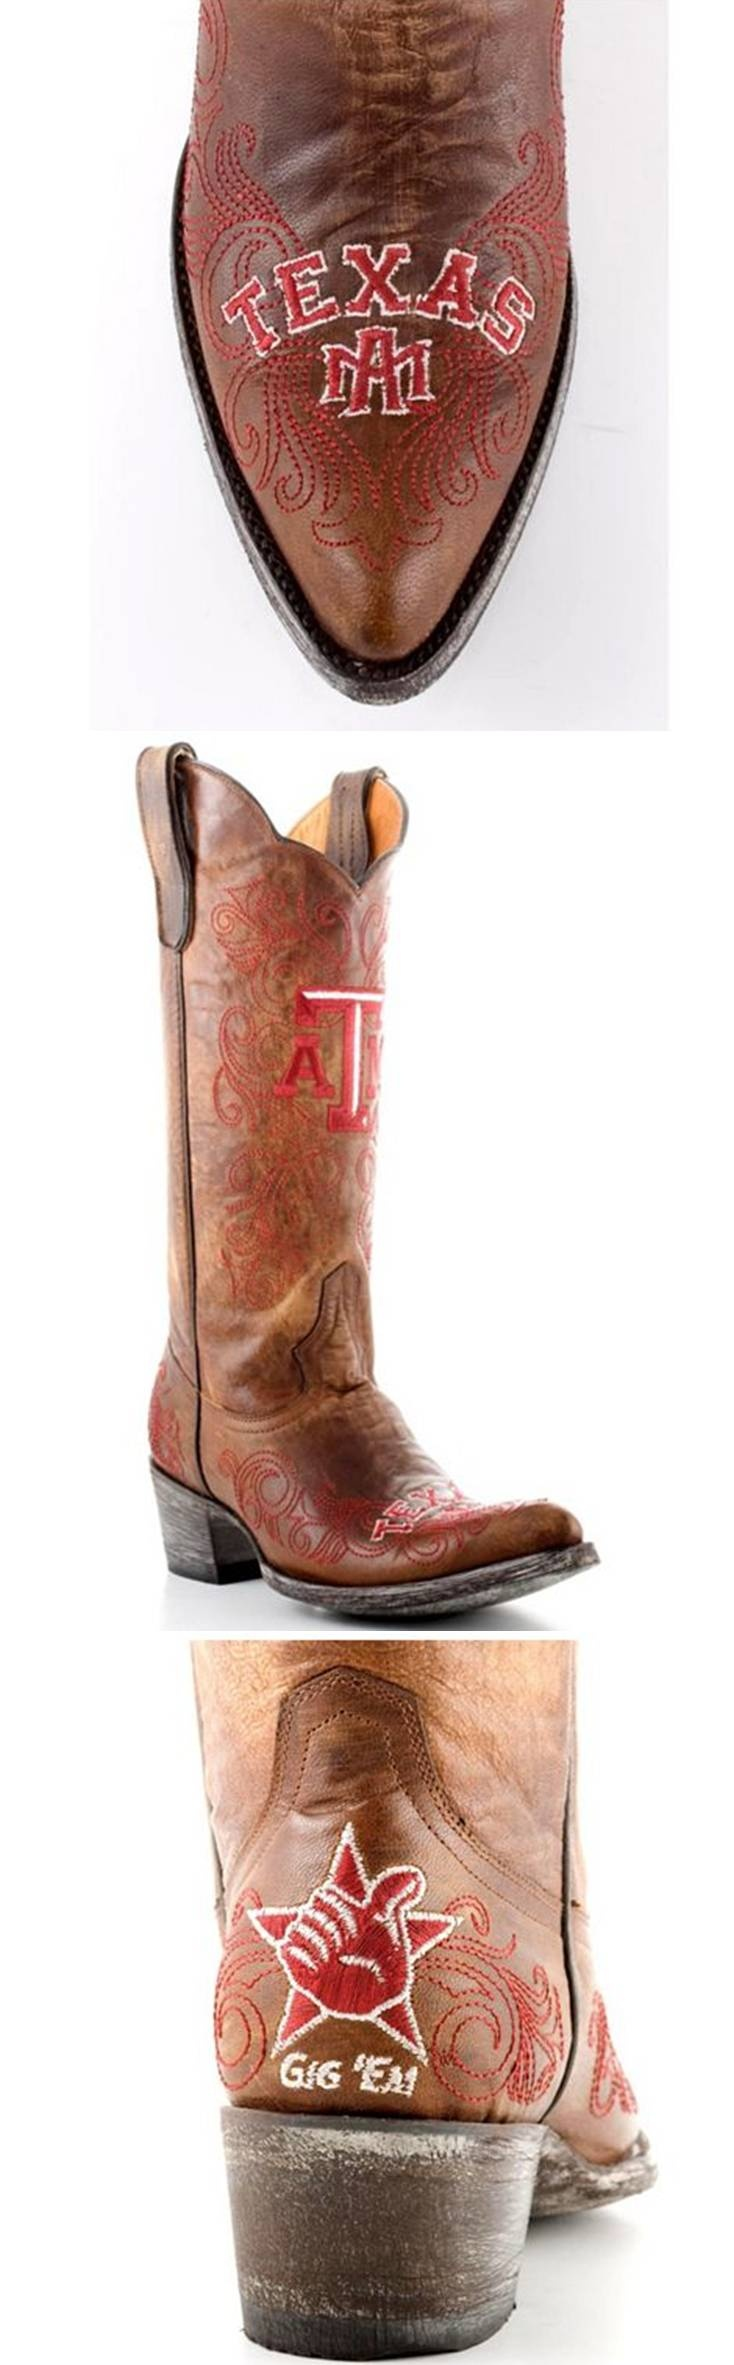 Texas A & M University Aggies - distressed pointed toe cowboy / cowgirl boots with logo